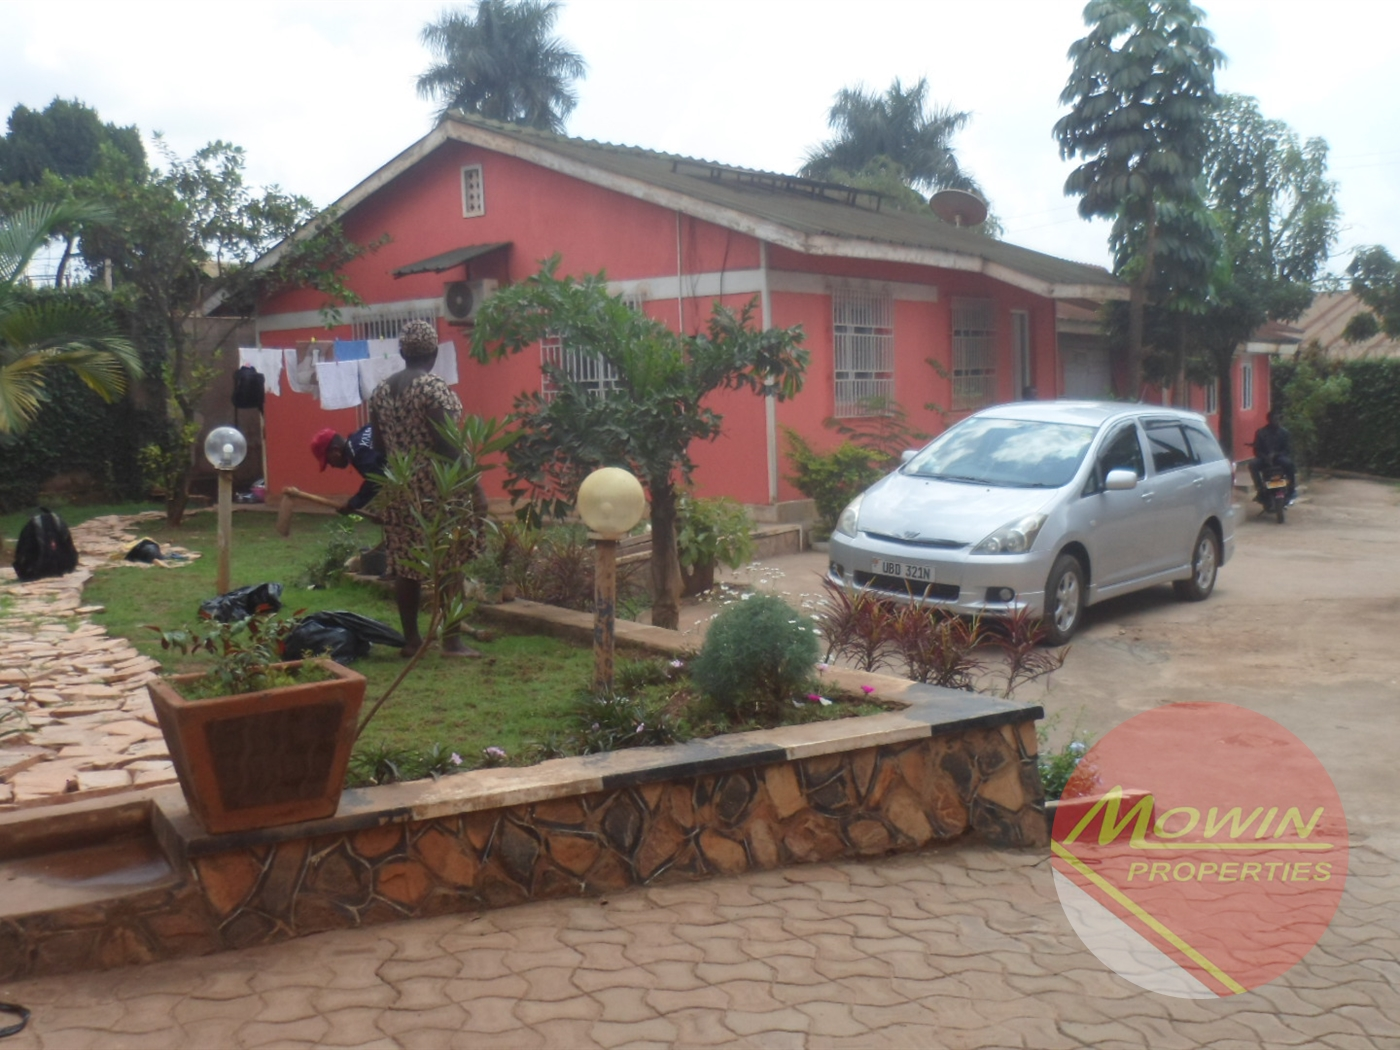 Apartment for rent in Kawempe Kampala